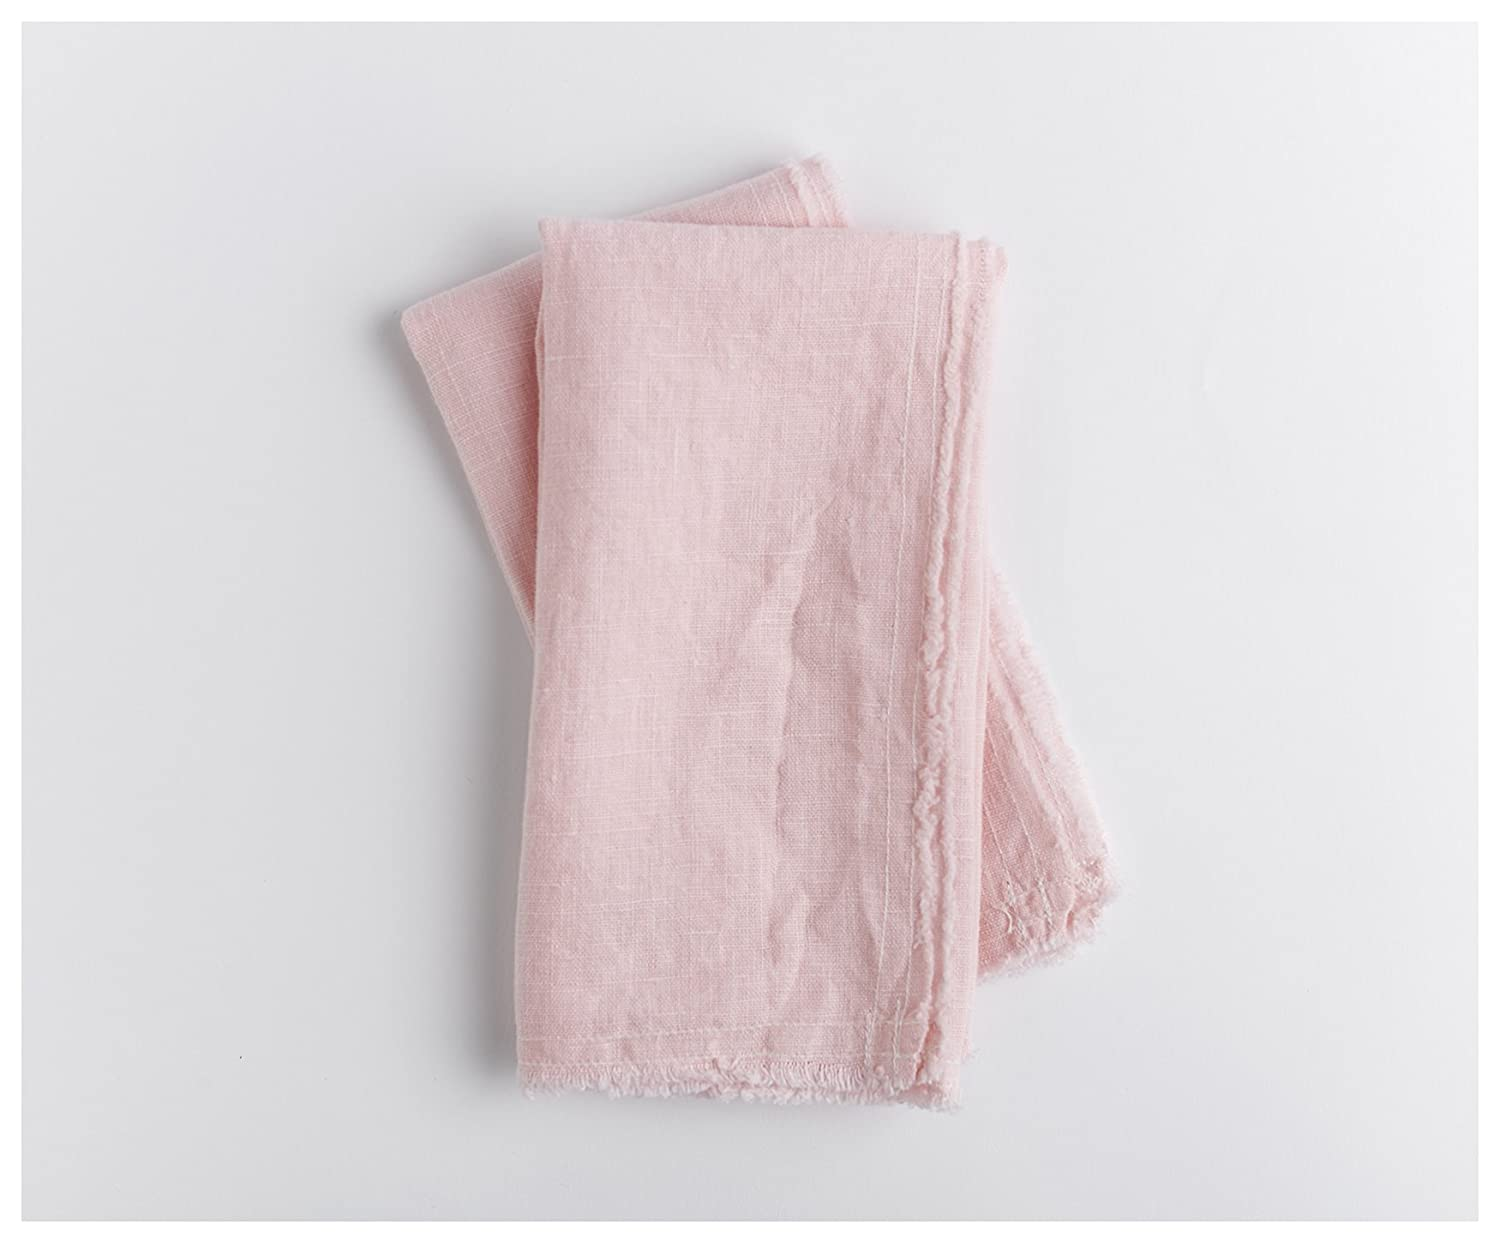 Blush pink linen Napkins- Set of 2 - Linen Napkins